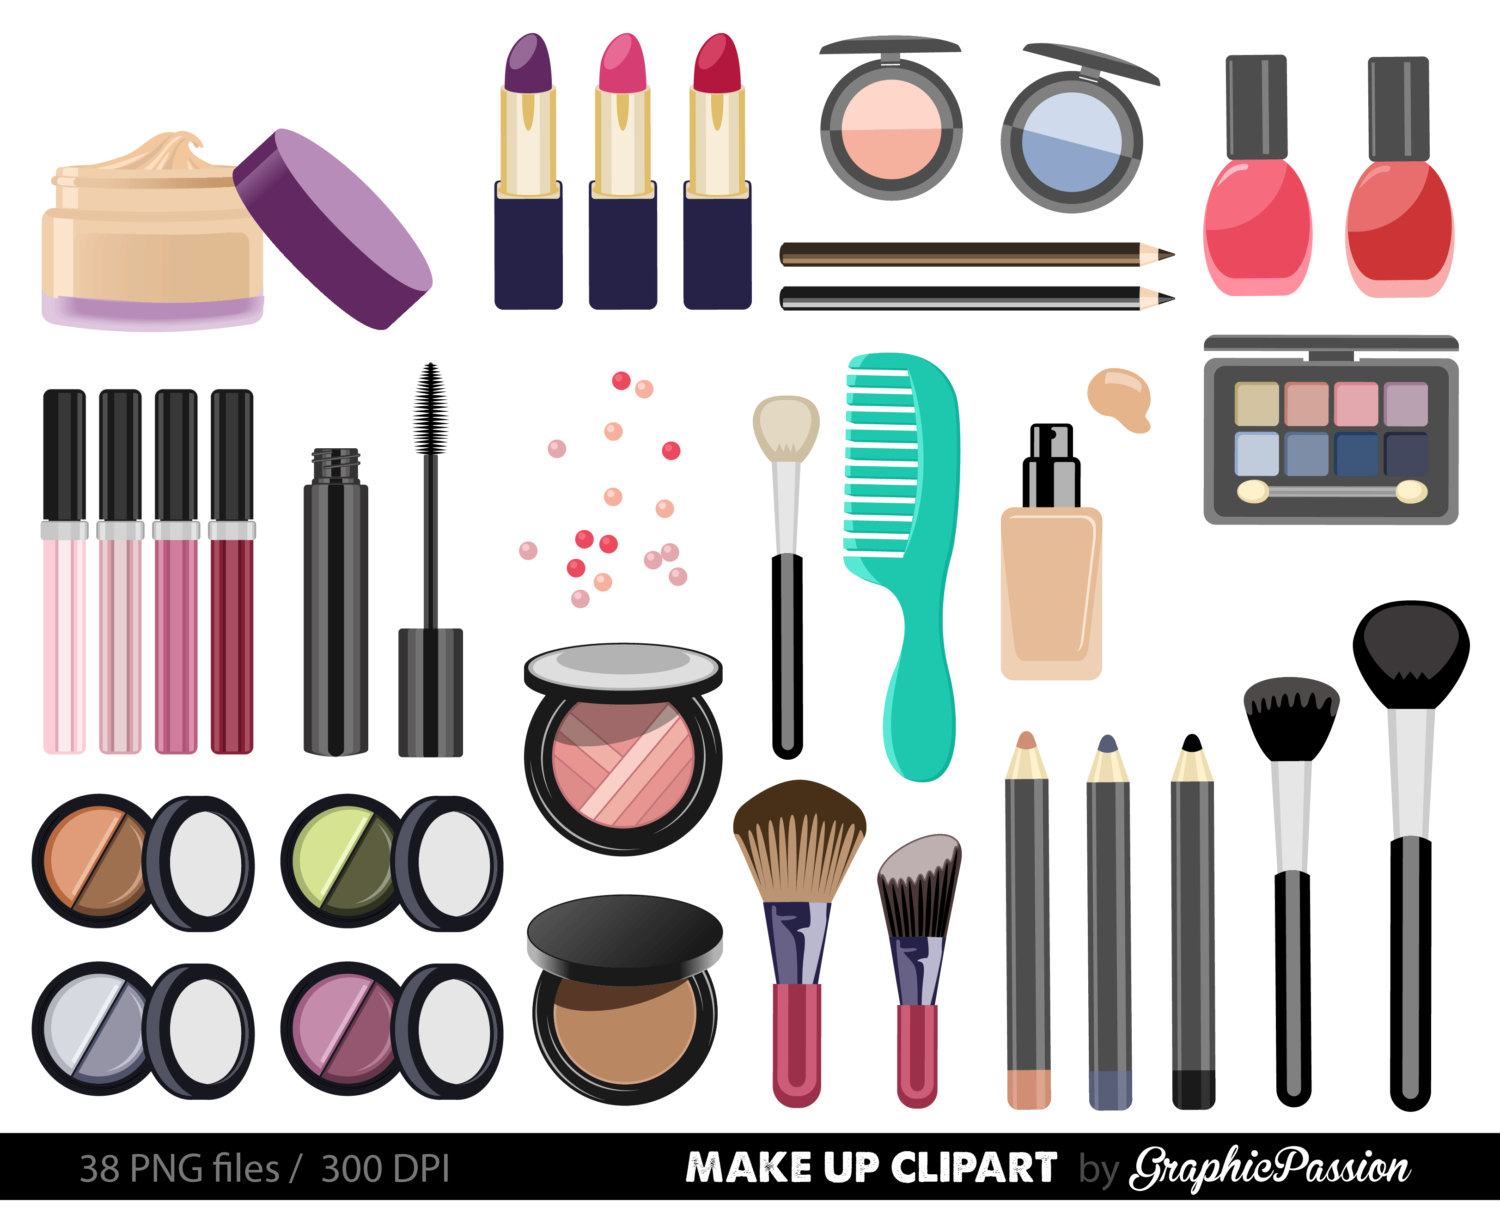 Free Makeup Cliparts, Download Free Clip Art, Free Clip Art.